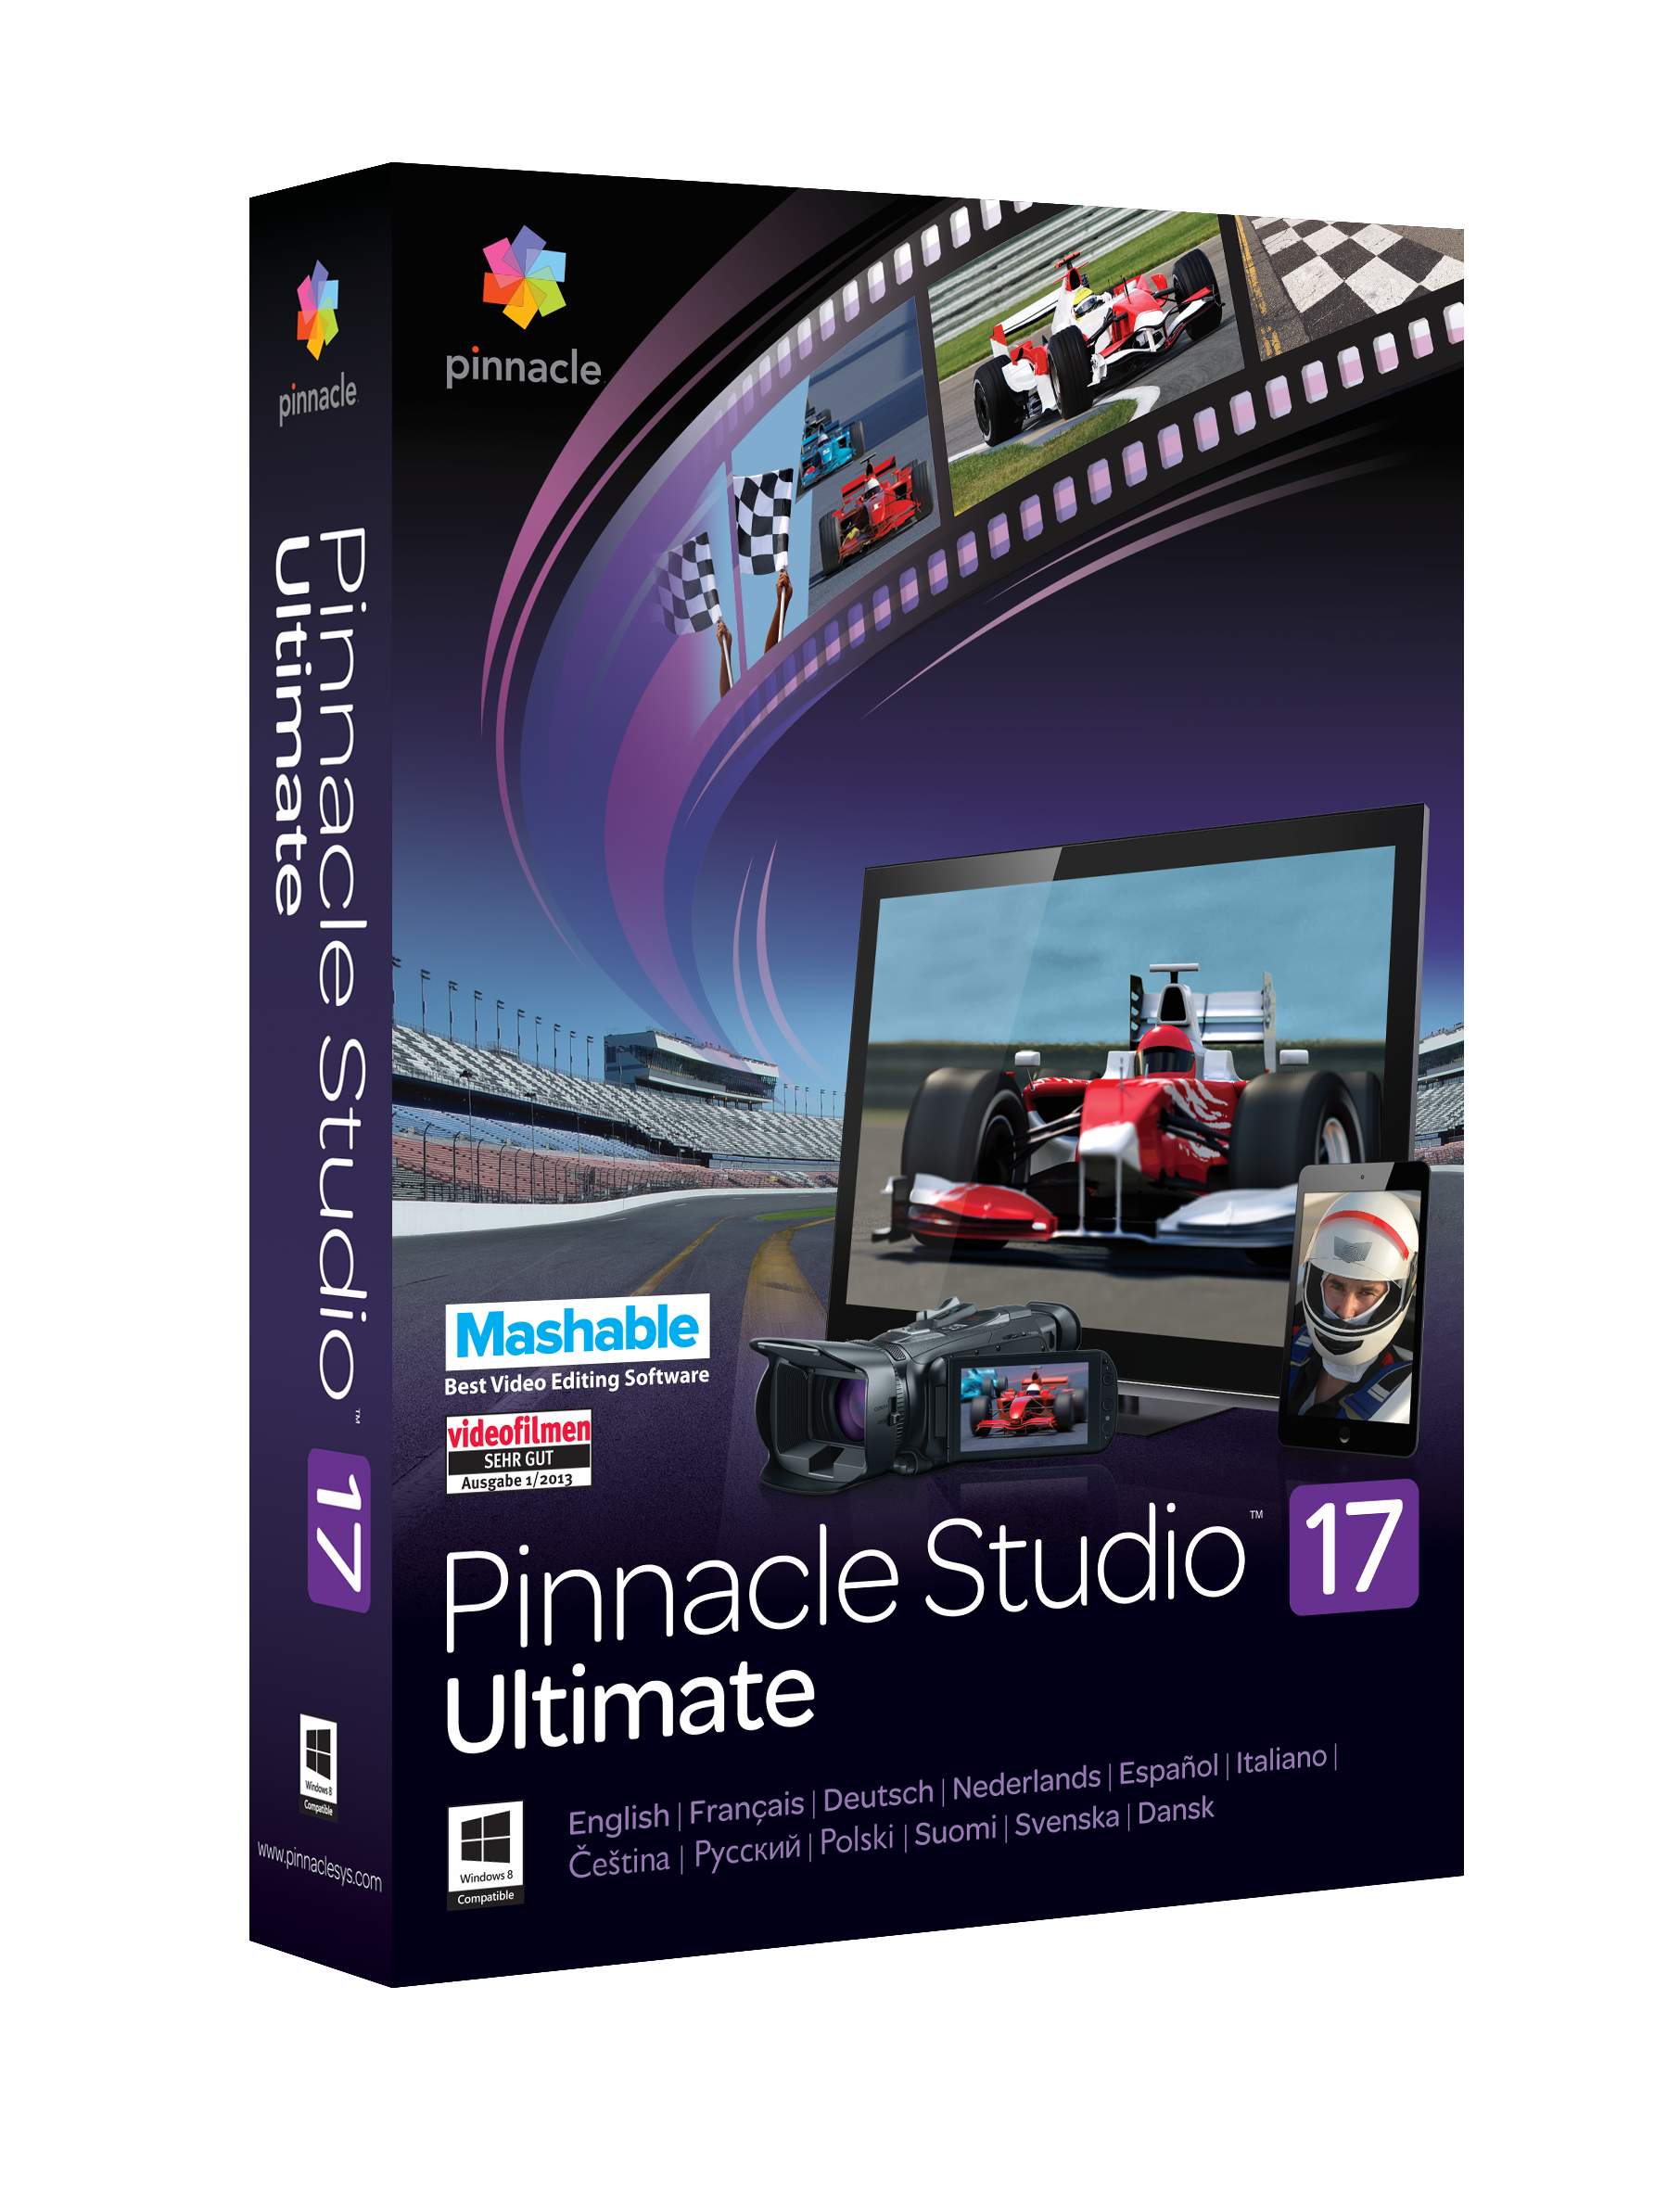 Pinnacle Studio 17 Ultimate 17.0.2.137 Multilingual